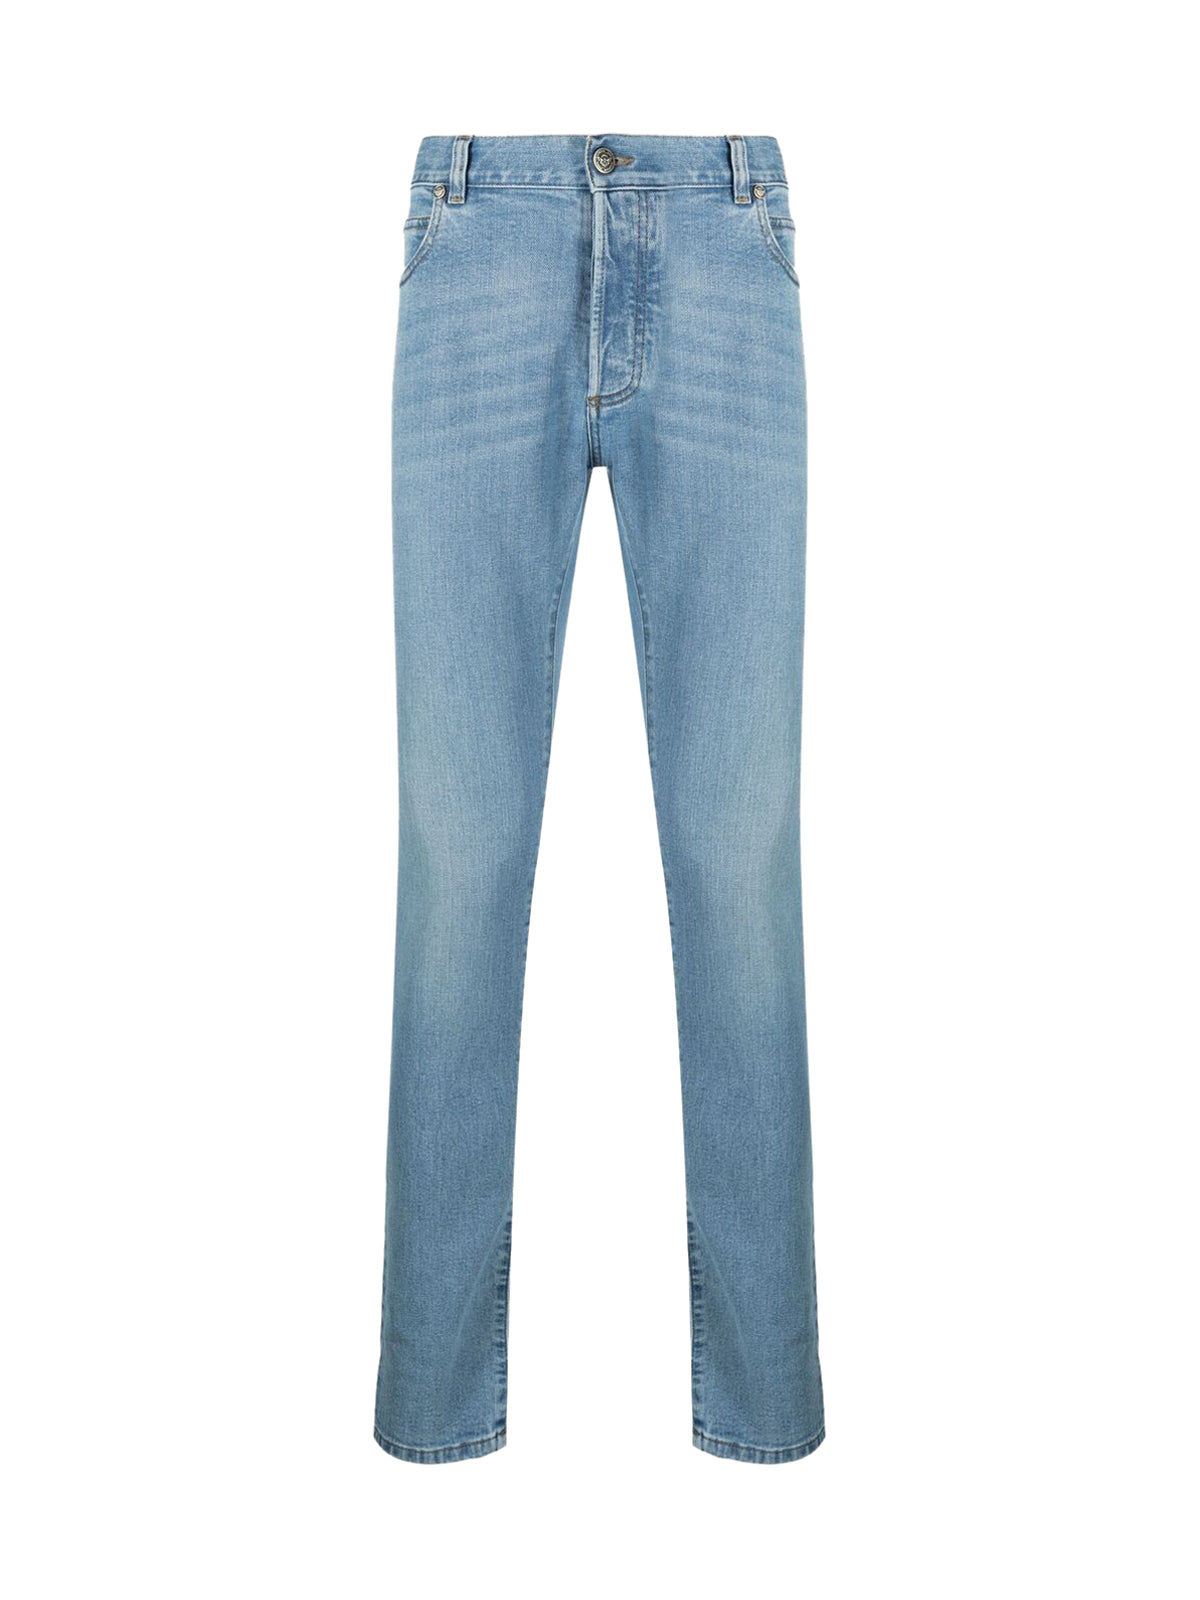 embroidered-monogram slim-fit jeans